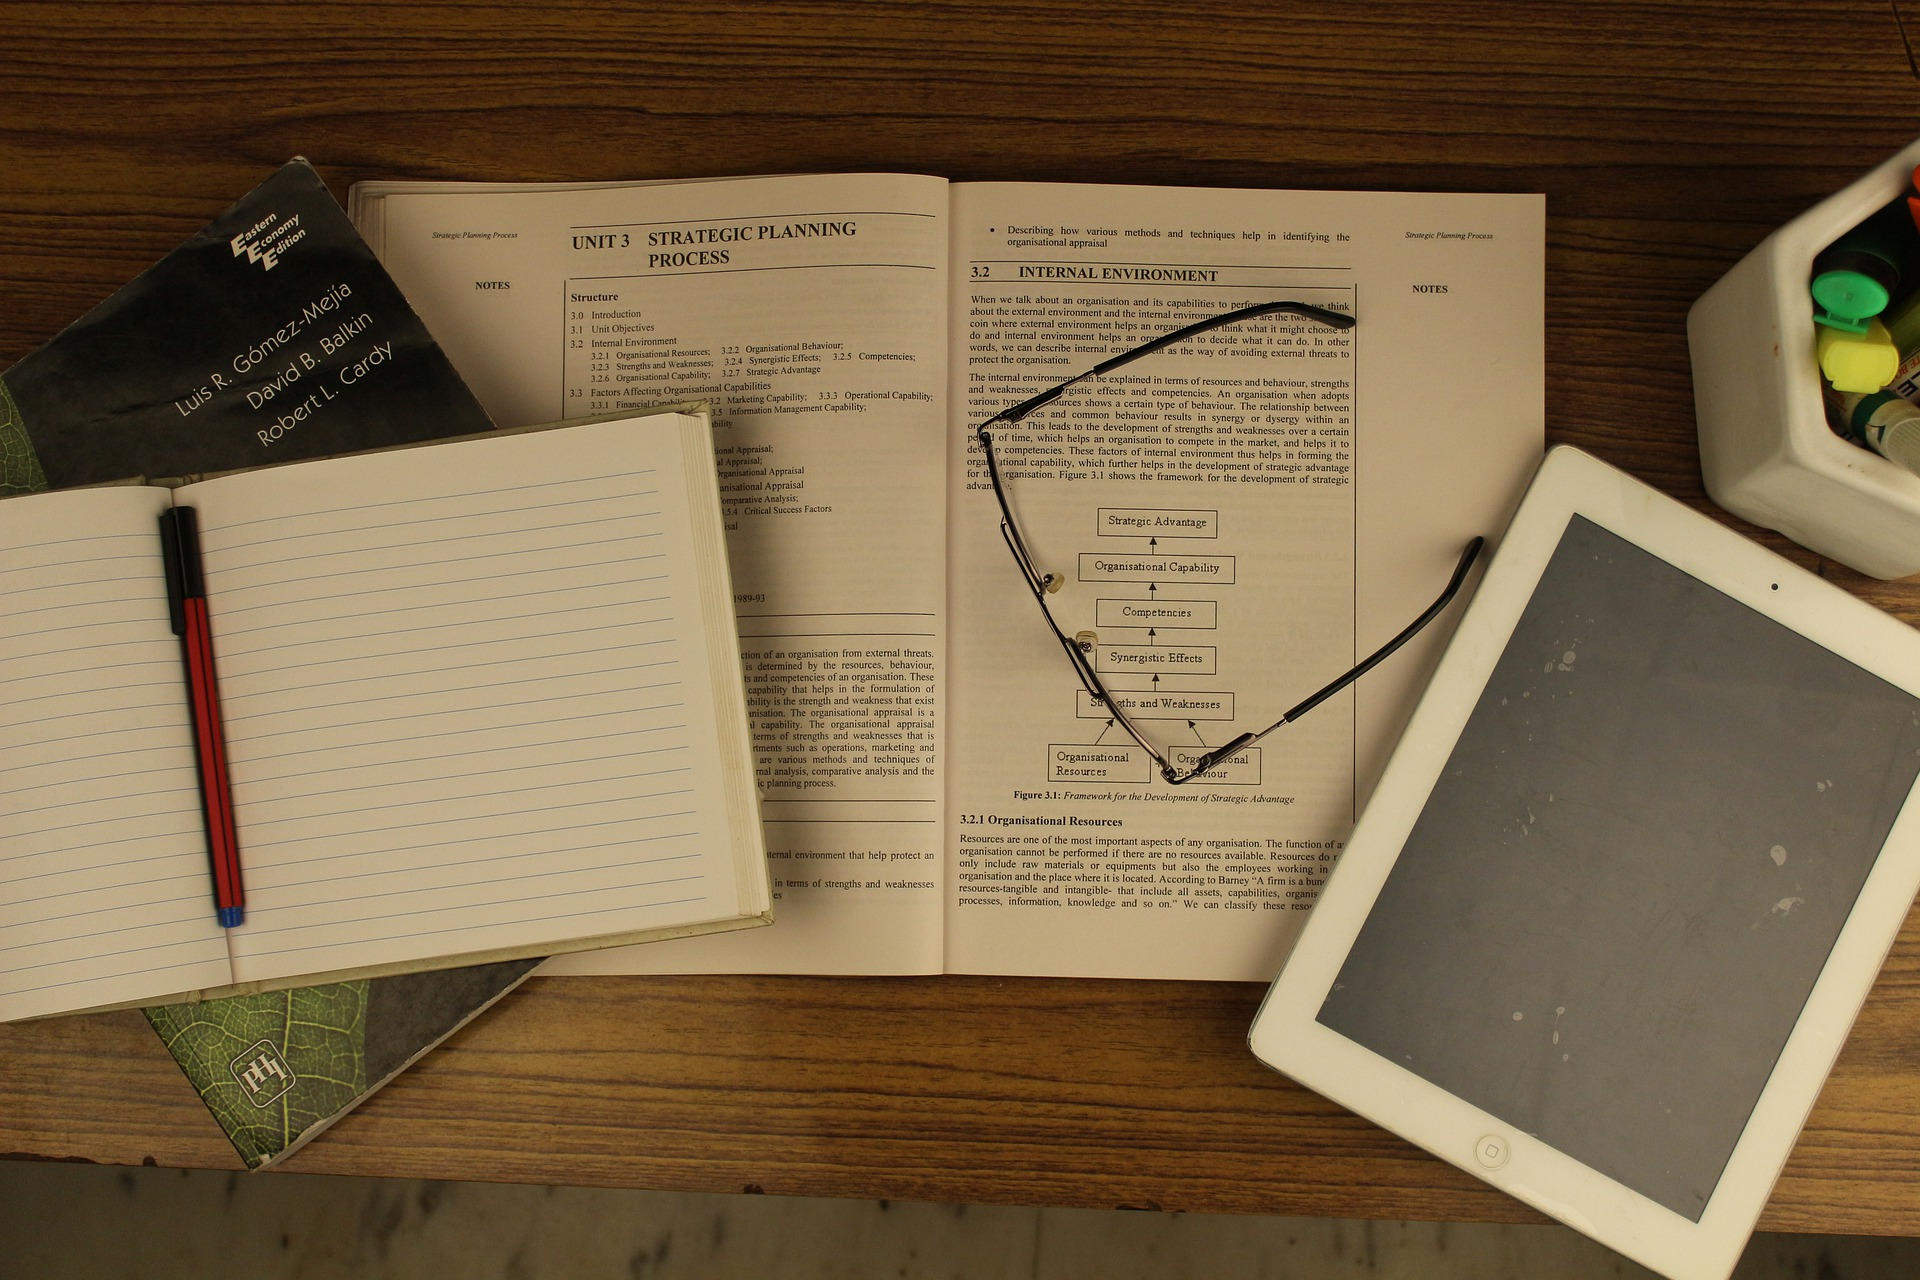 iPad next to notebook and open textbook in article about taking digital notes.